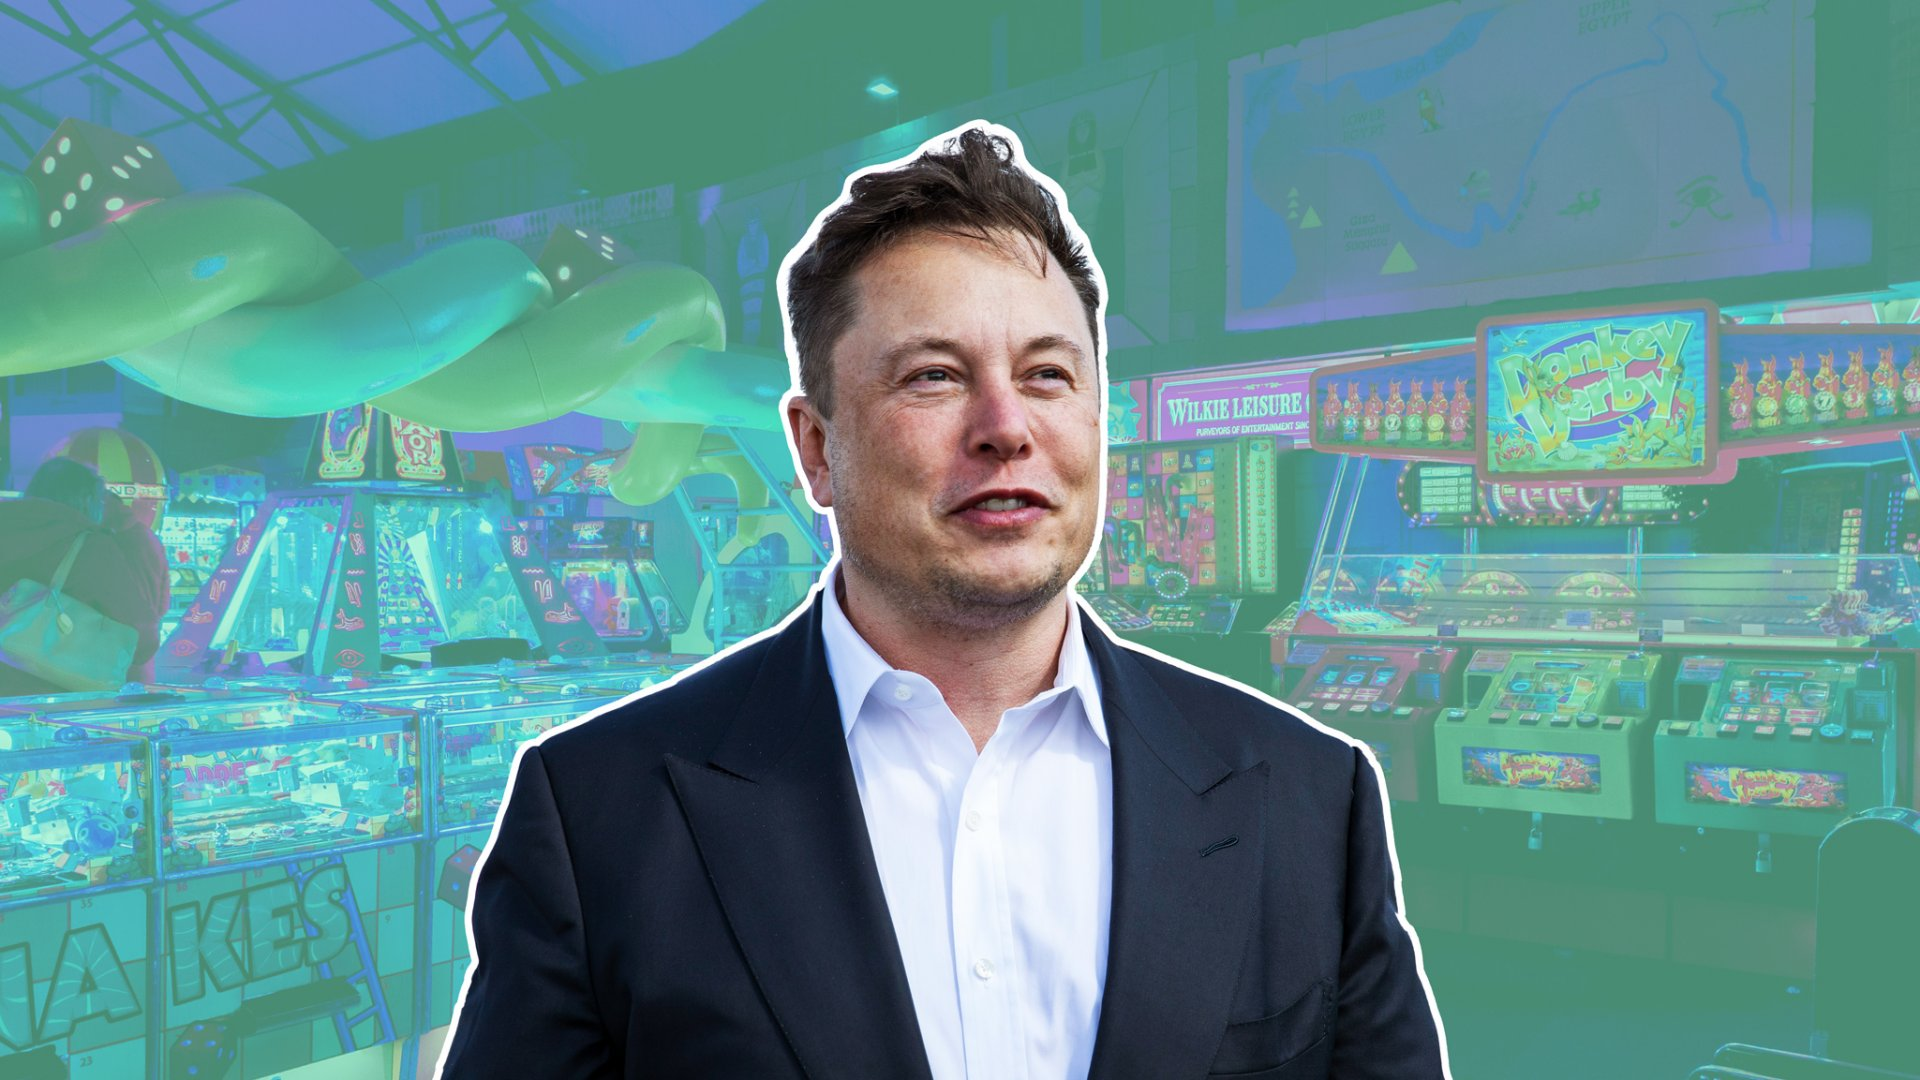 Elon Musk Says Playing Video Games Helped Make Him a Billionaire | Inc.com